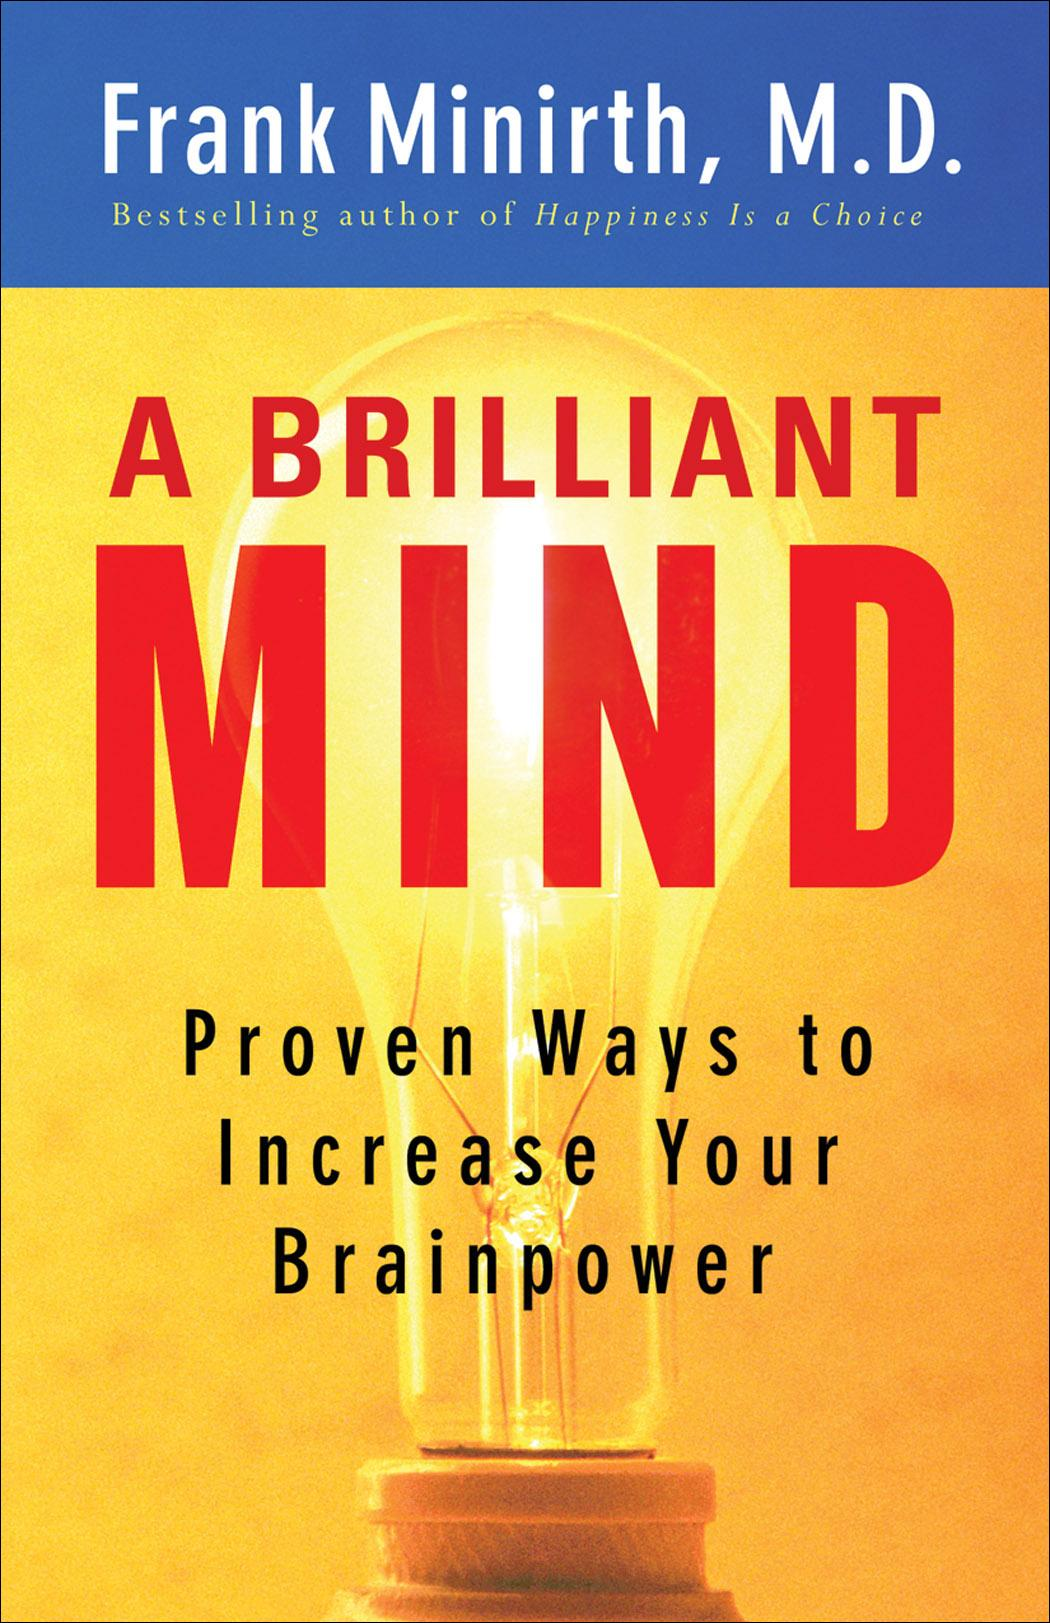 Brilliant Mind, A: Proven Ways to Increase Your Brainpower EB9781441201805